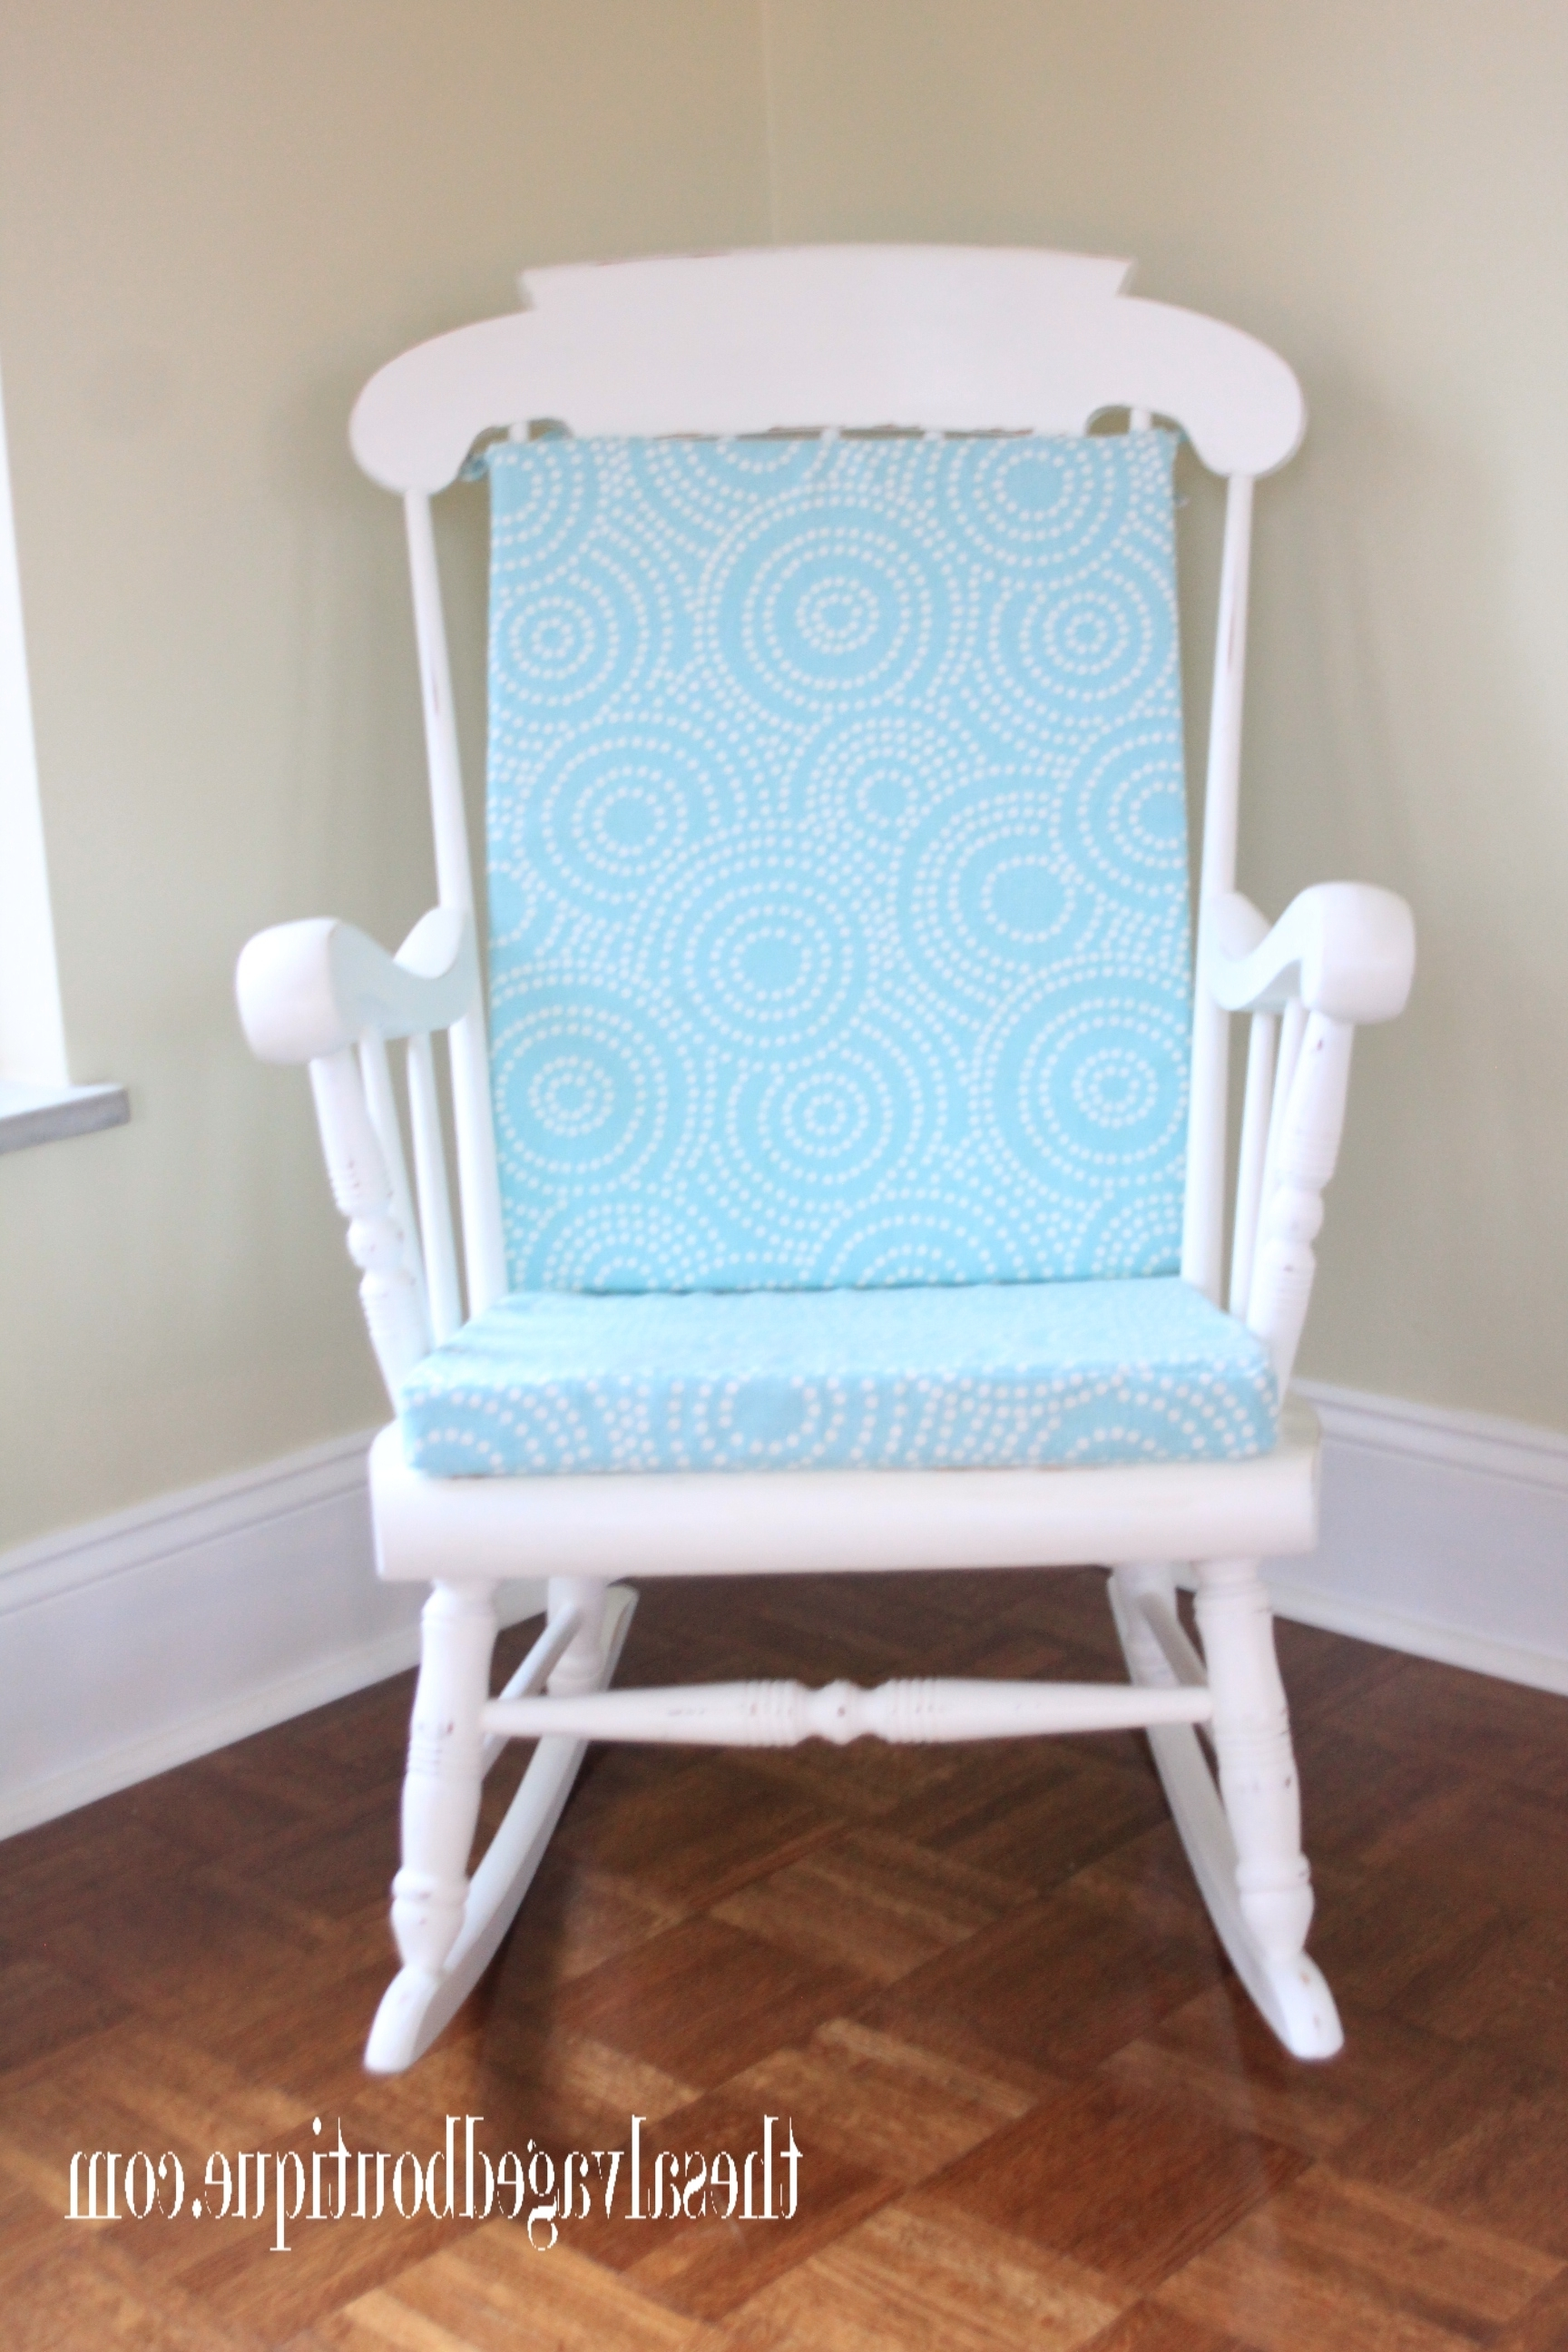 Grandpa's Rocking Chair Brightened Up For New Baby Nursery (View 7 of 20)